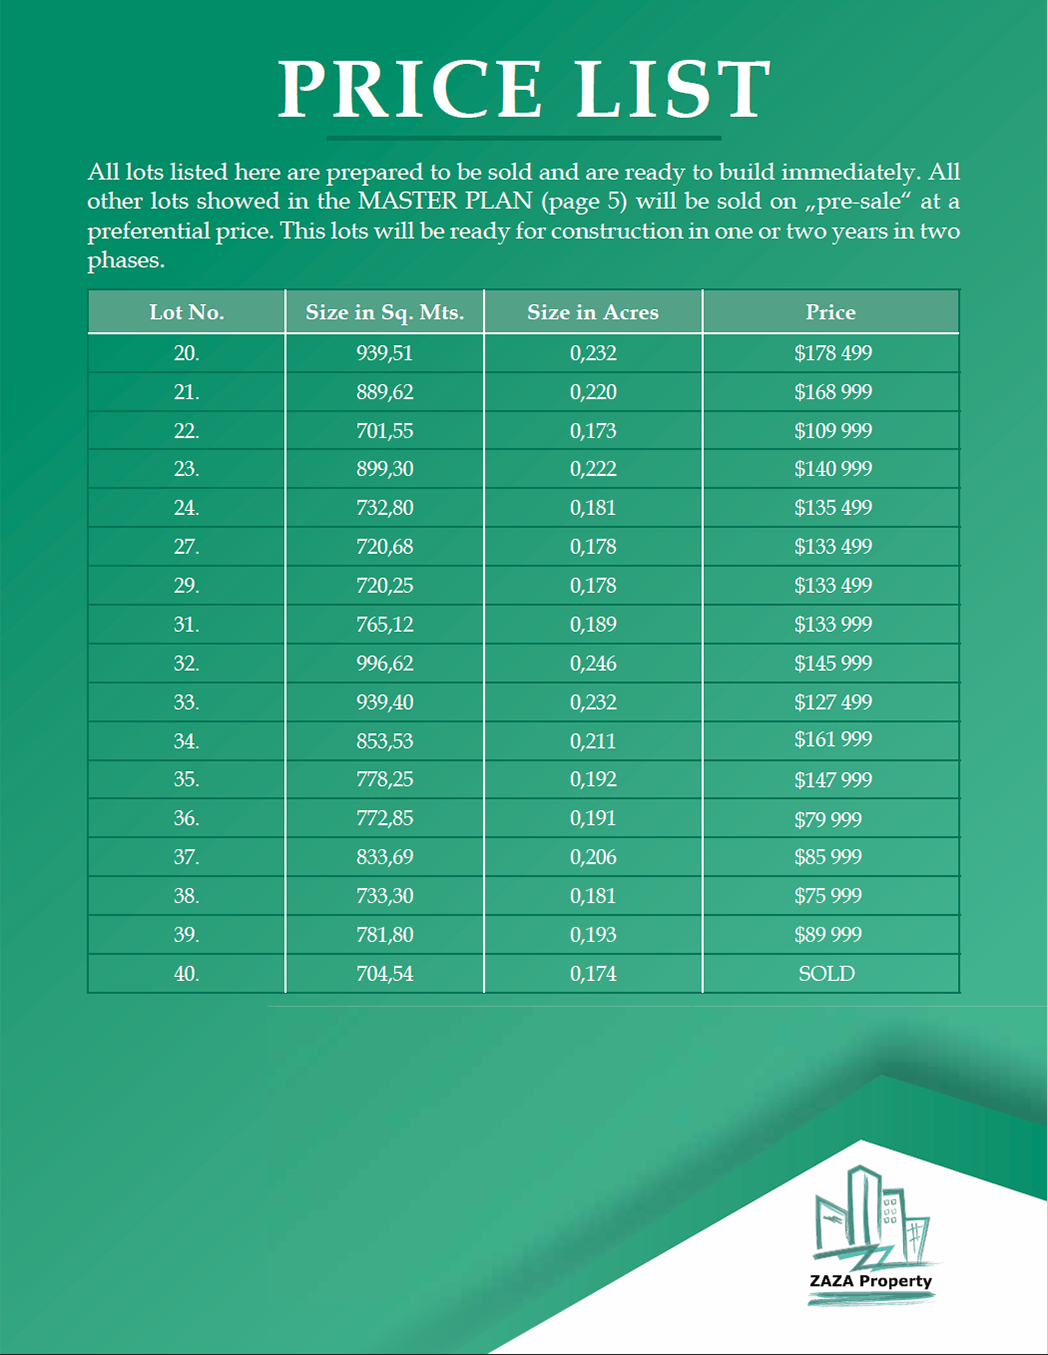 PRICE LIST_ZaZa_Property